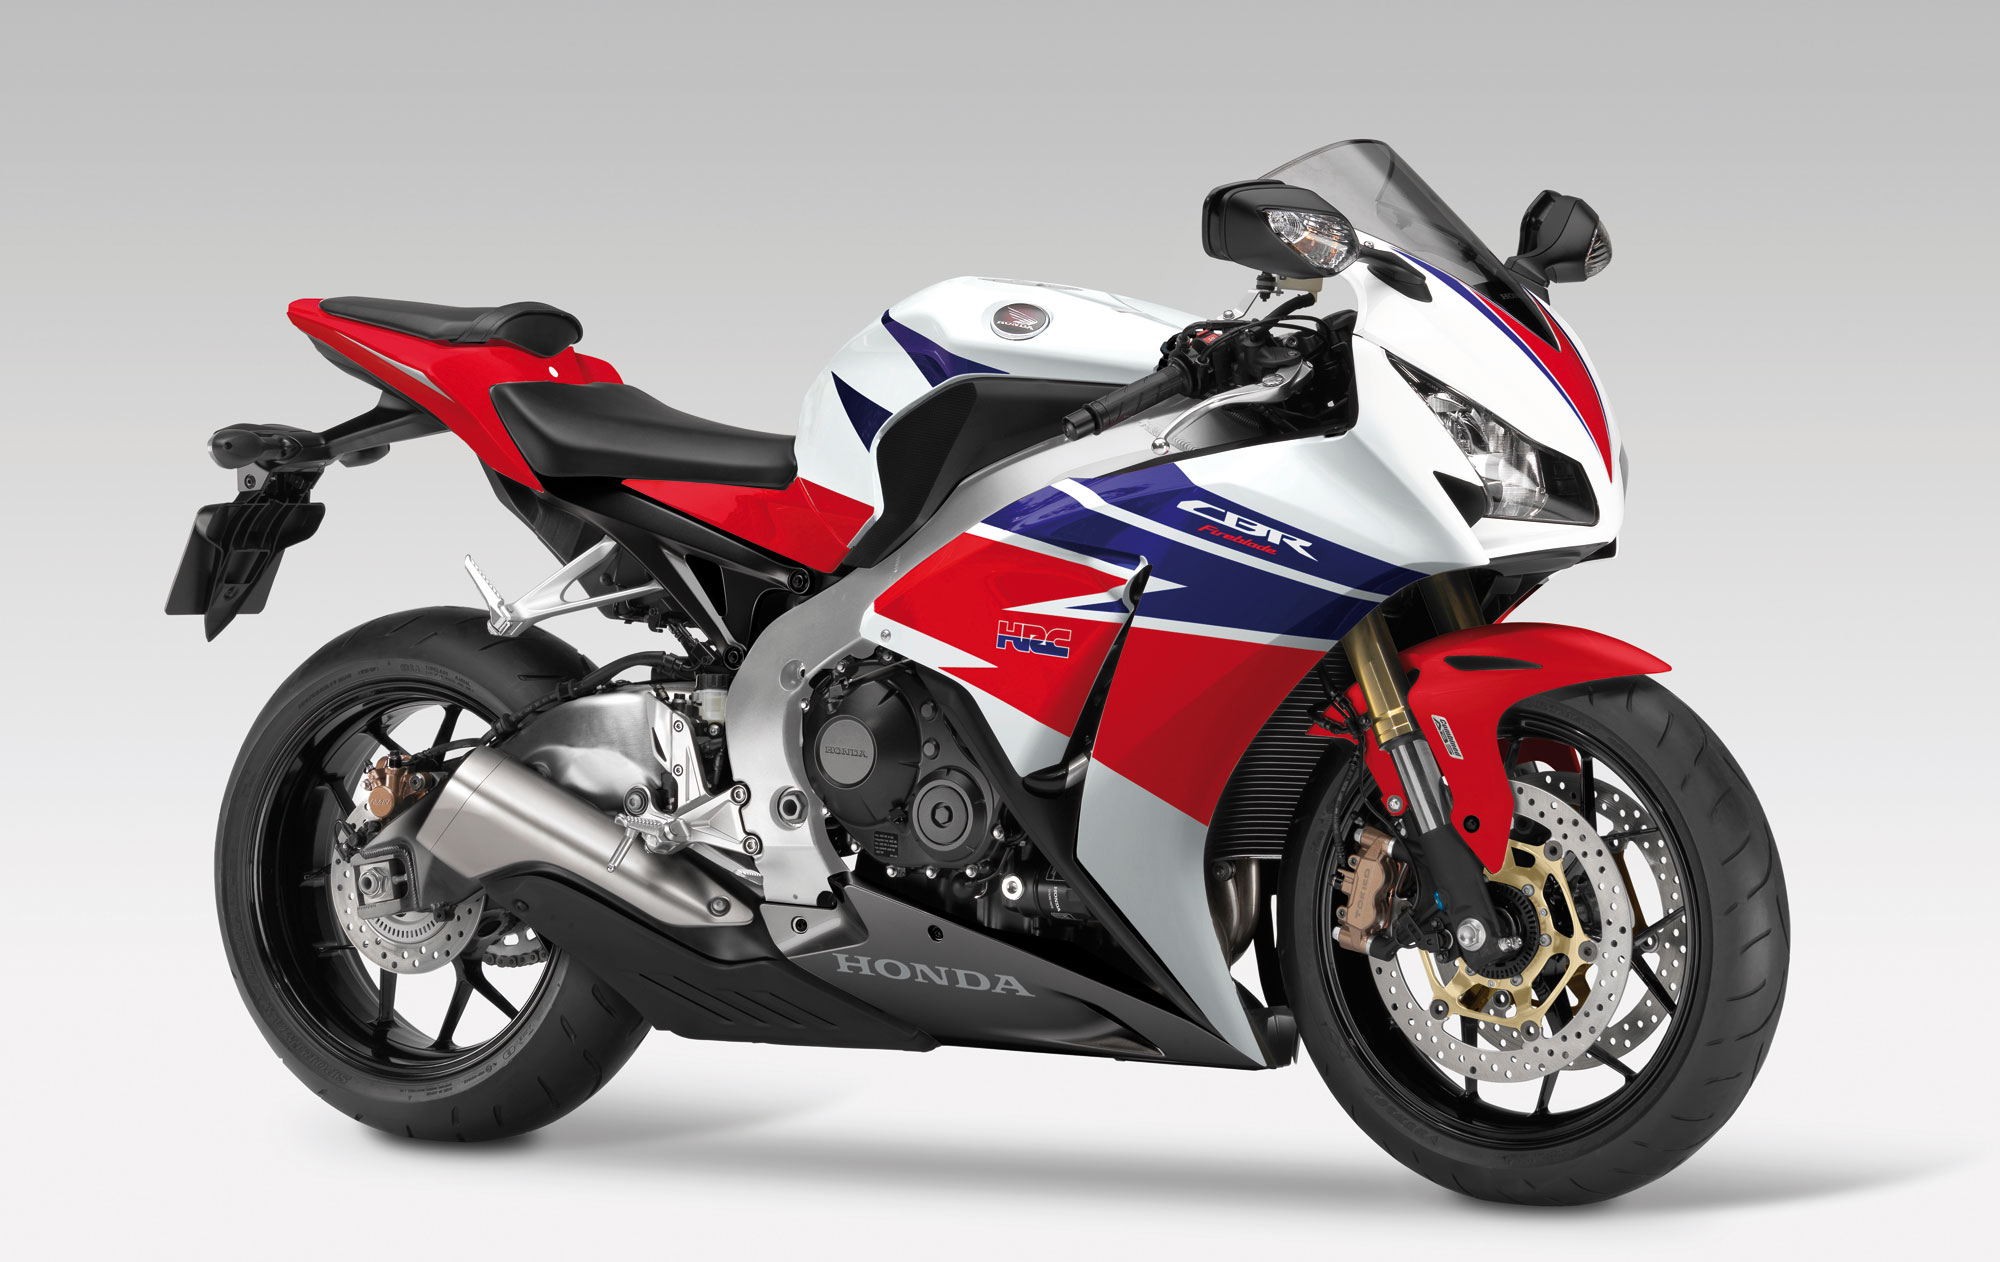 Honda Cbr1000rr Review >> 2013 Honda Cbr1000rr Fireblade Review